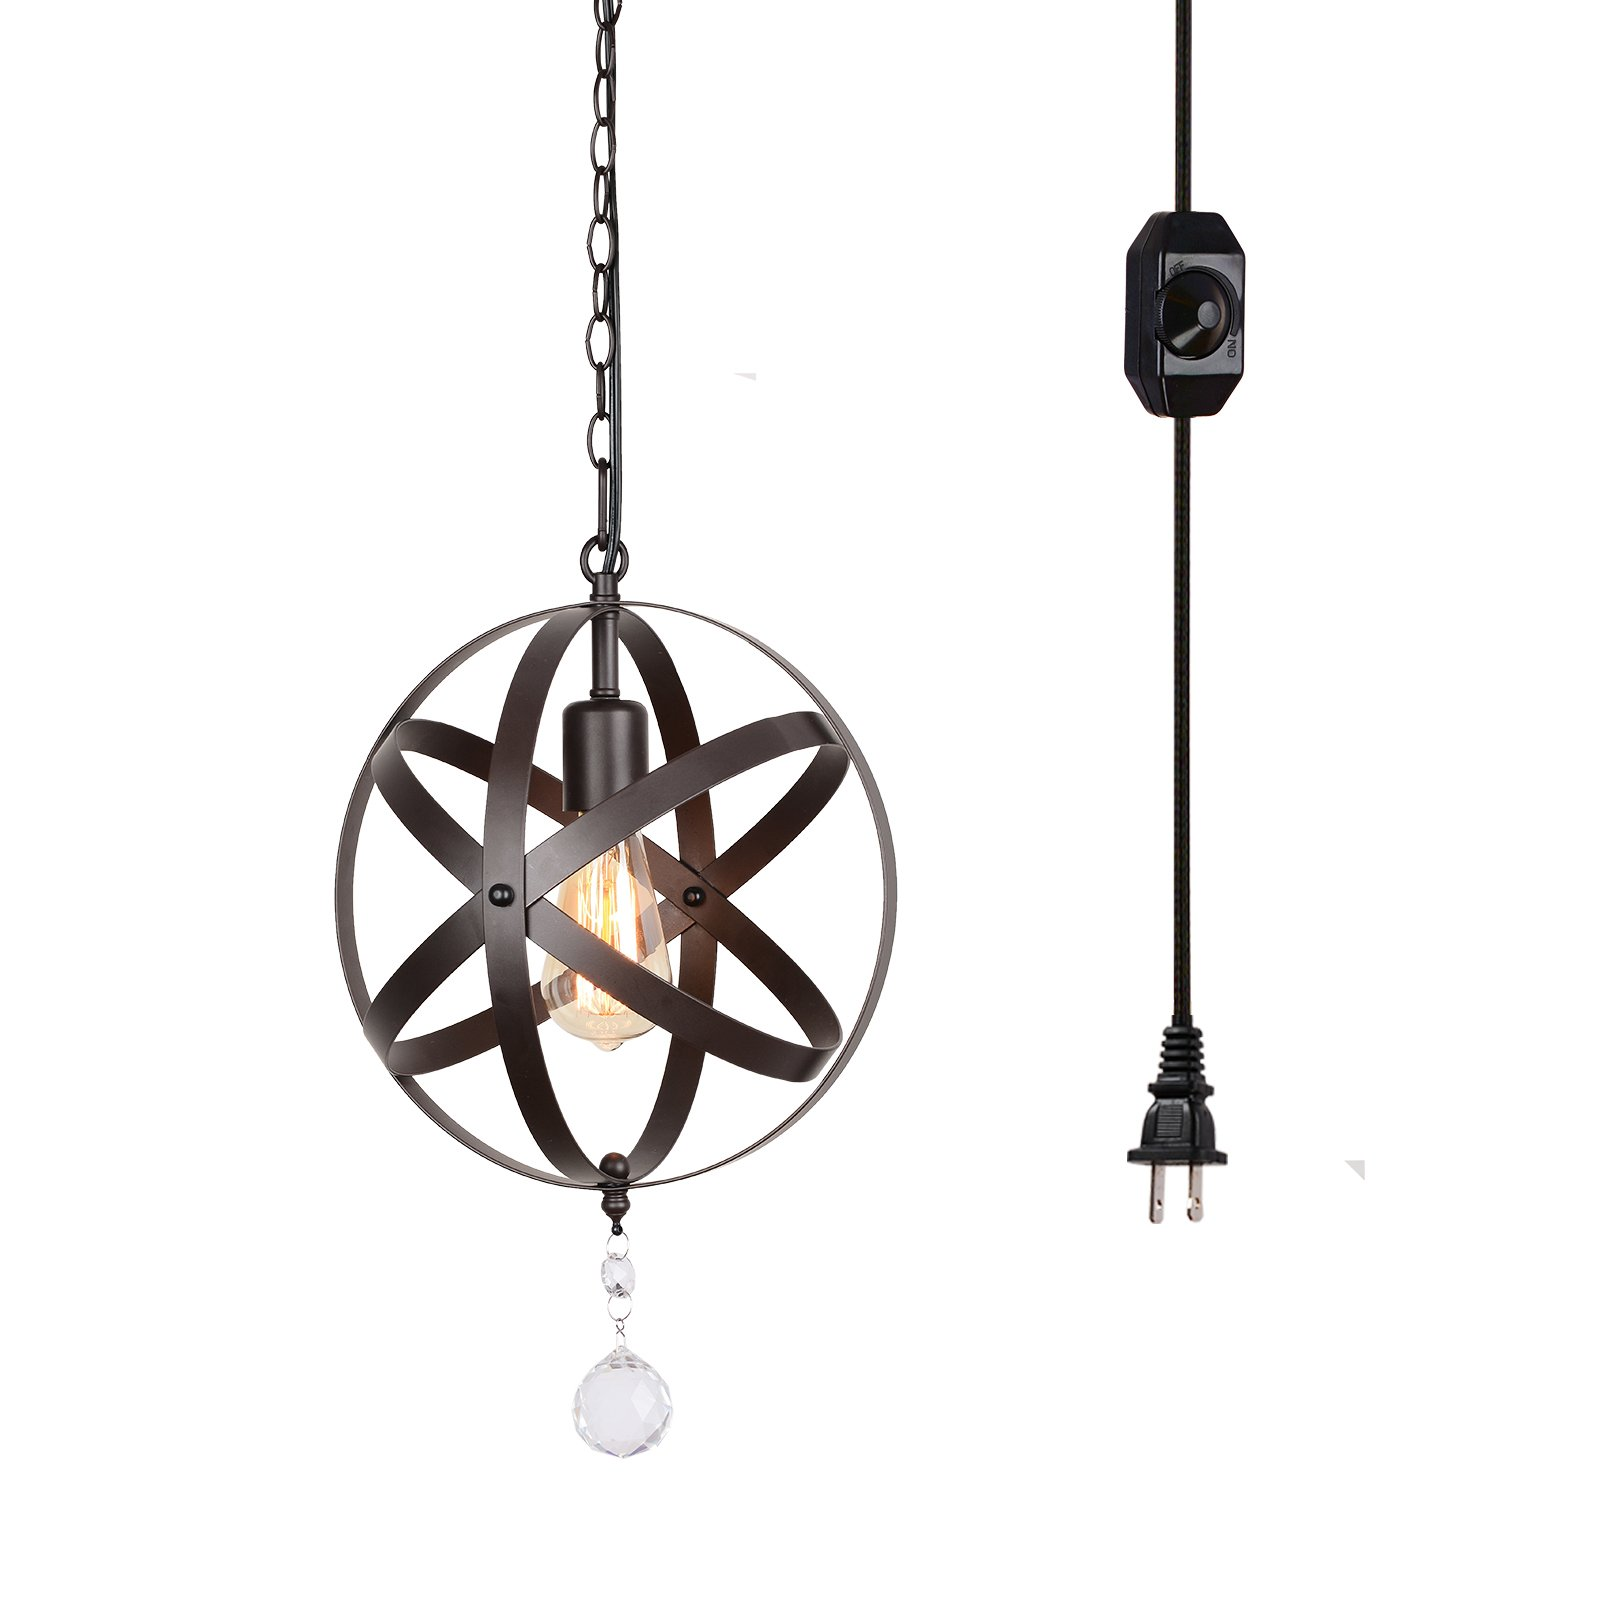 Creatgeek Industrial Globe Chandelier with 15 Ft Plug in Cord, Metal Hanging Chain and On/Off Dimmer Switch, Perfect Vintage Oil Rubbed Bronze Orb Swag Pendant Lights for Home Decor